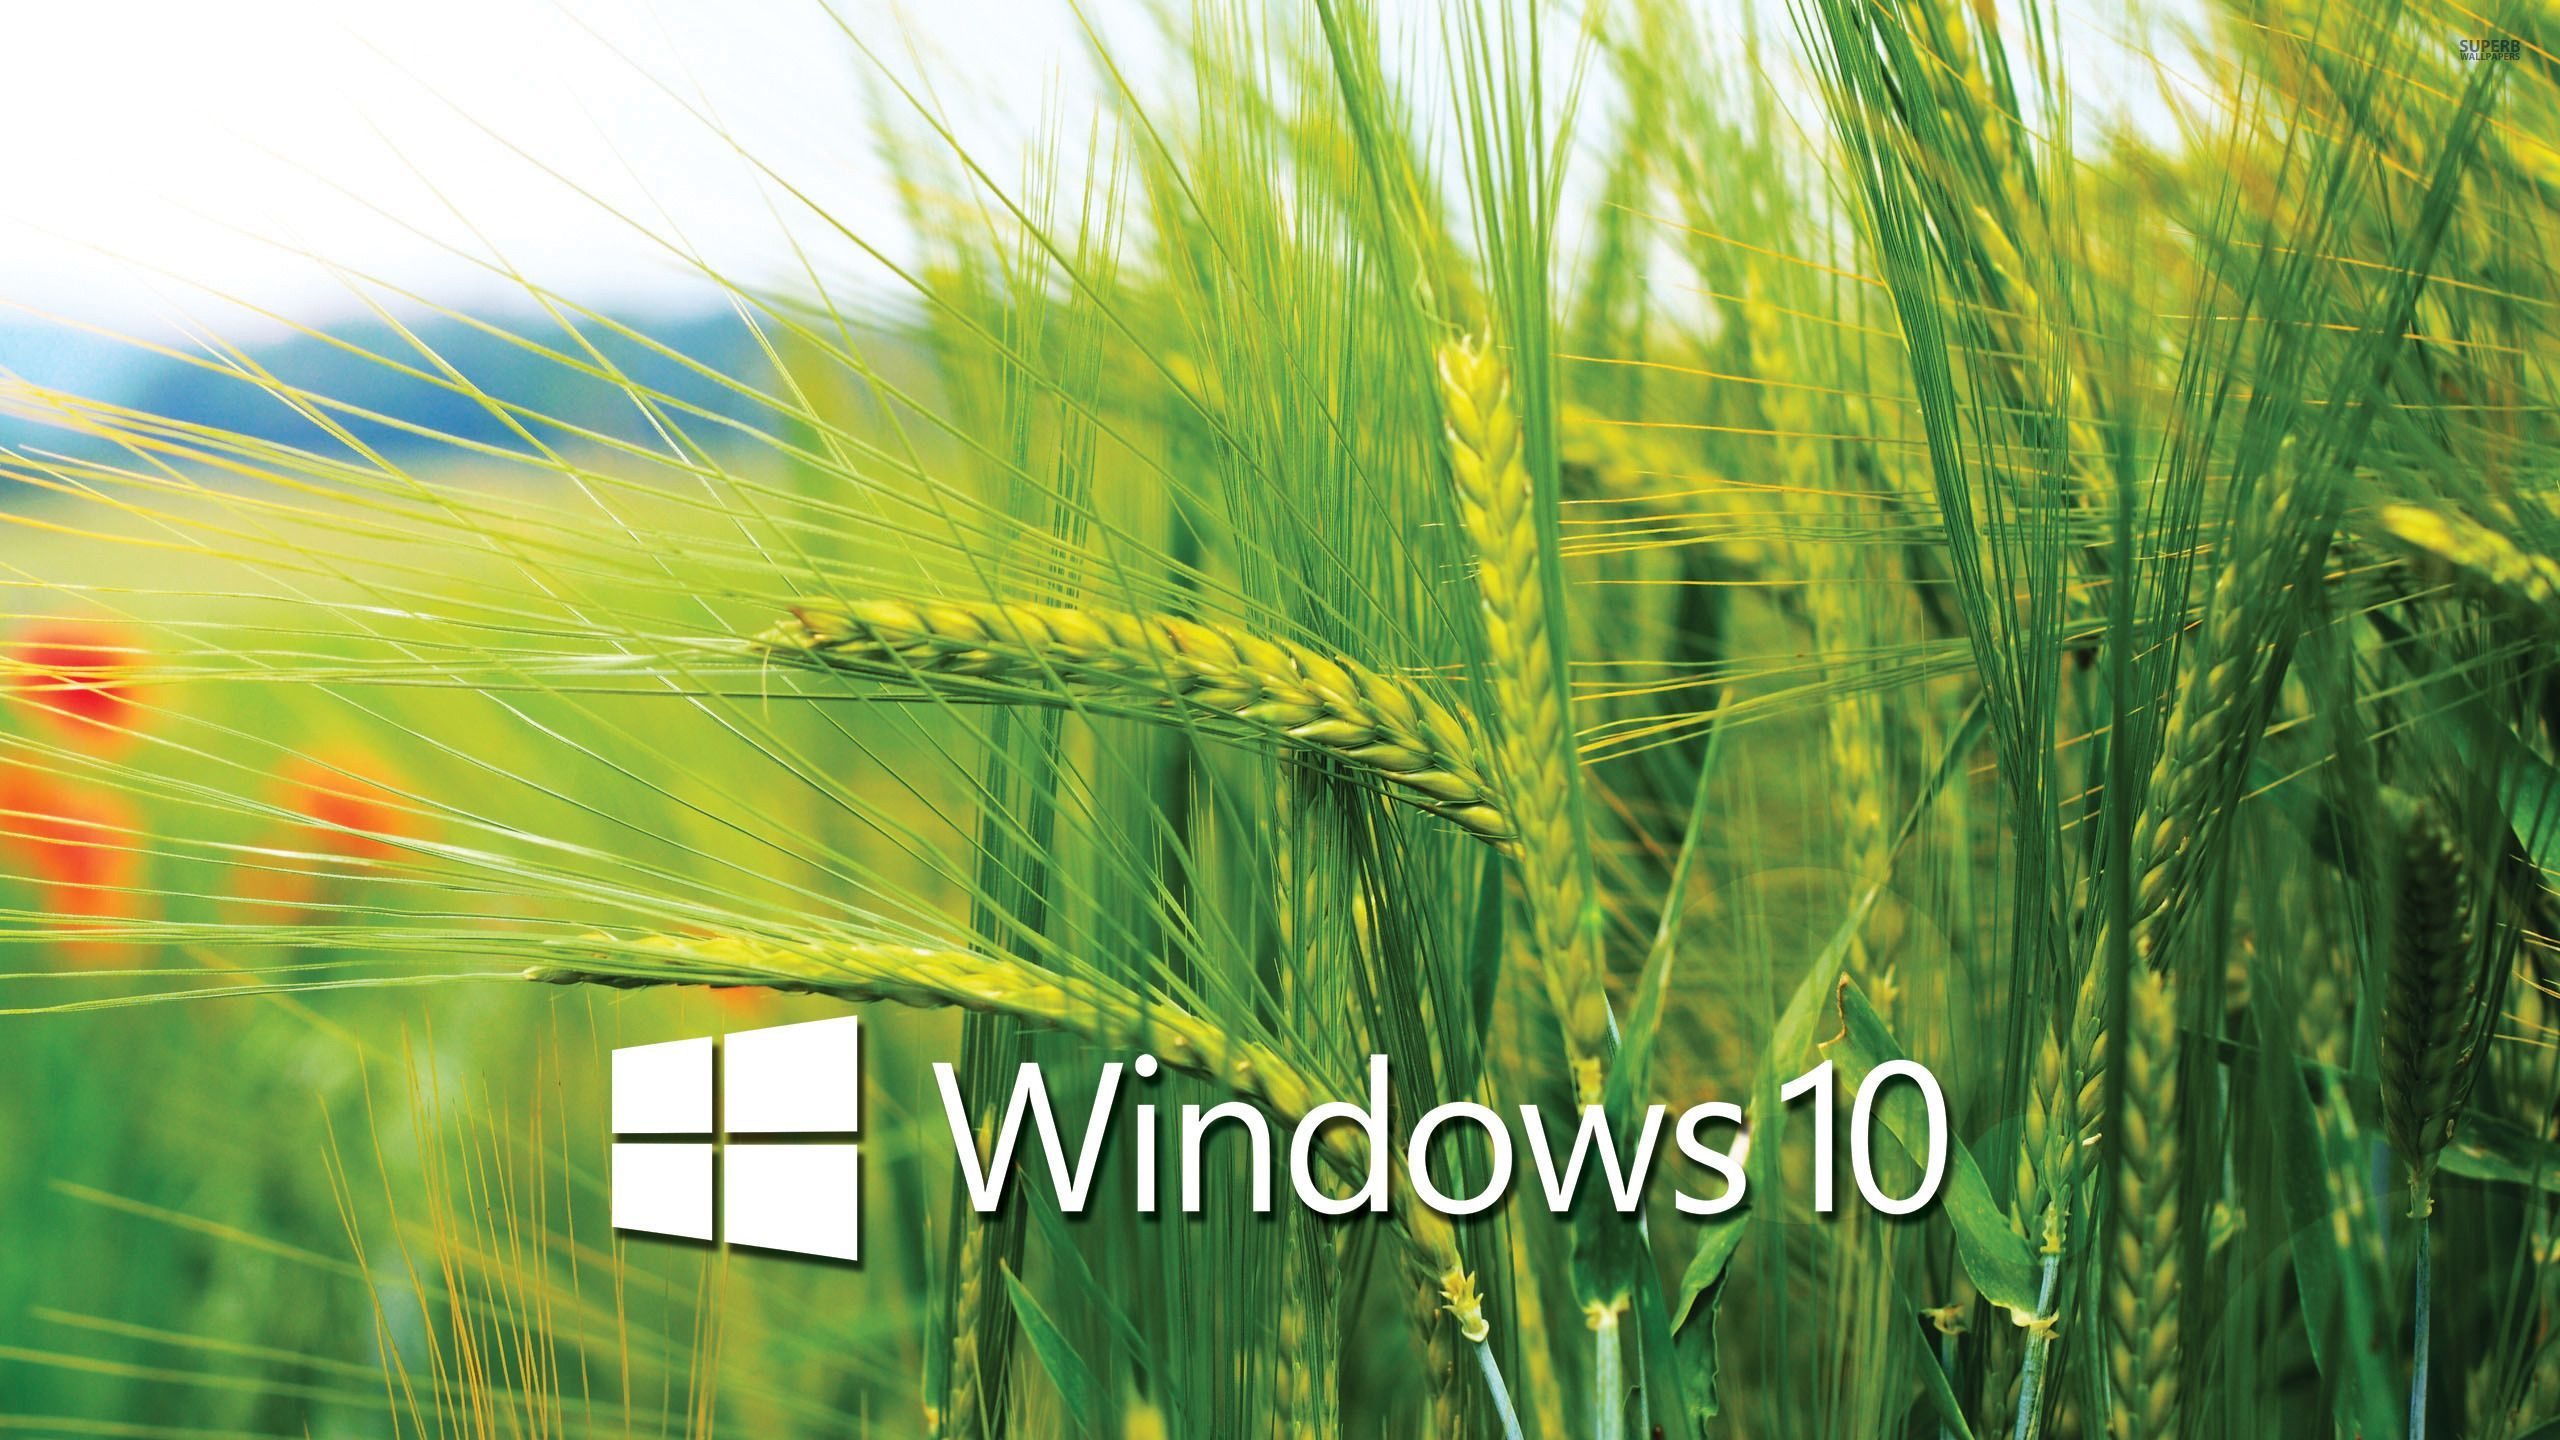 Image Result For Windows 10 Wallpapers Download Green Nature